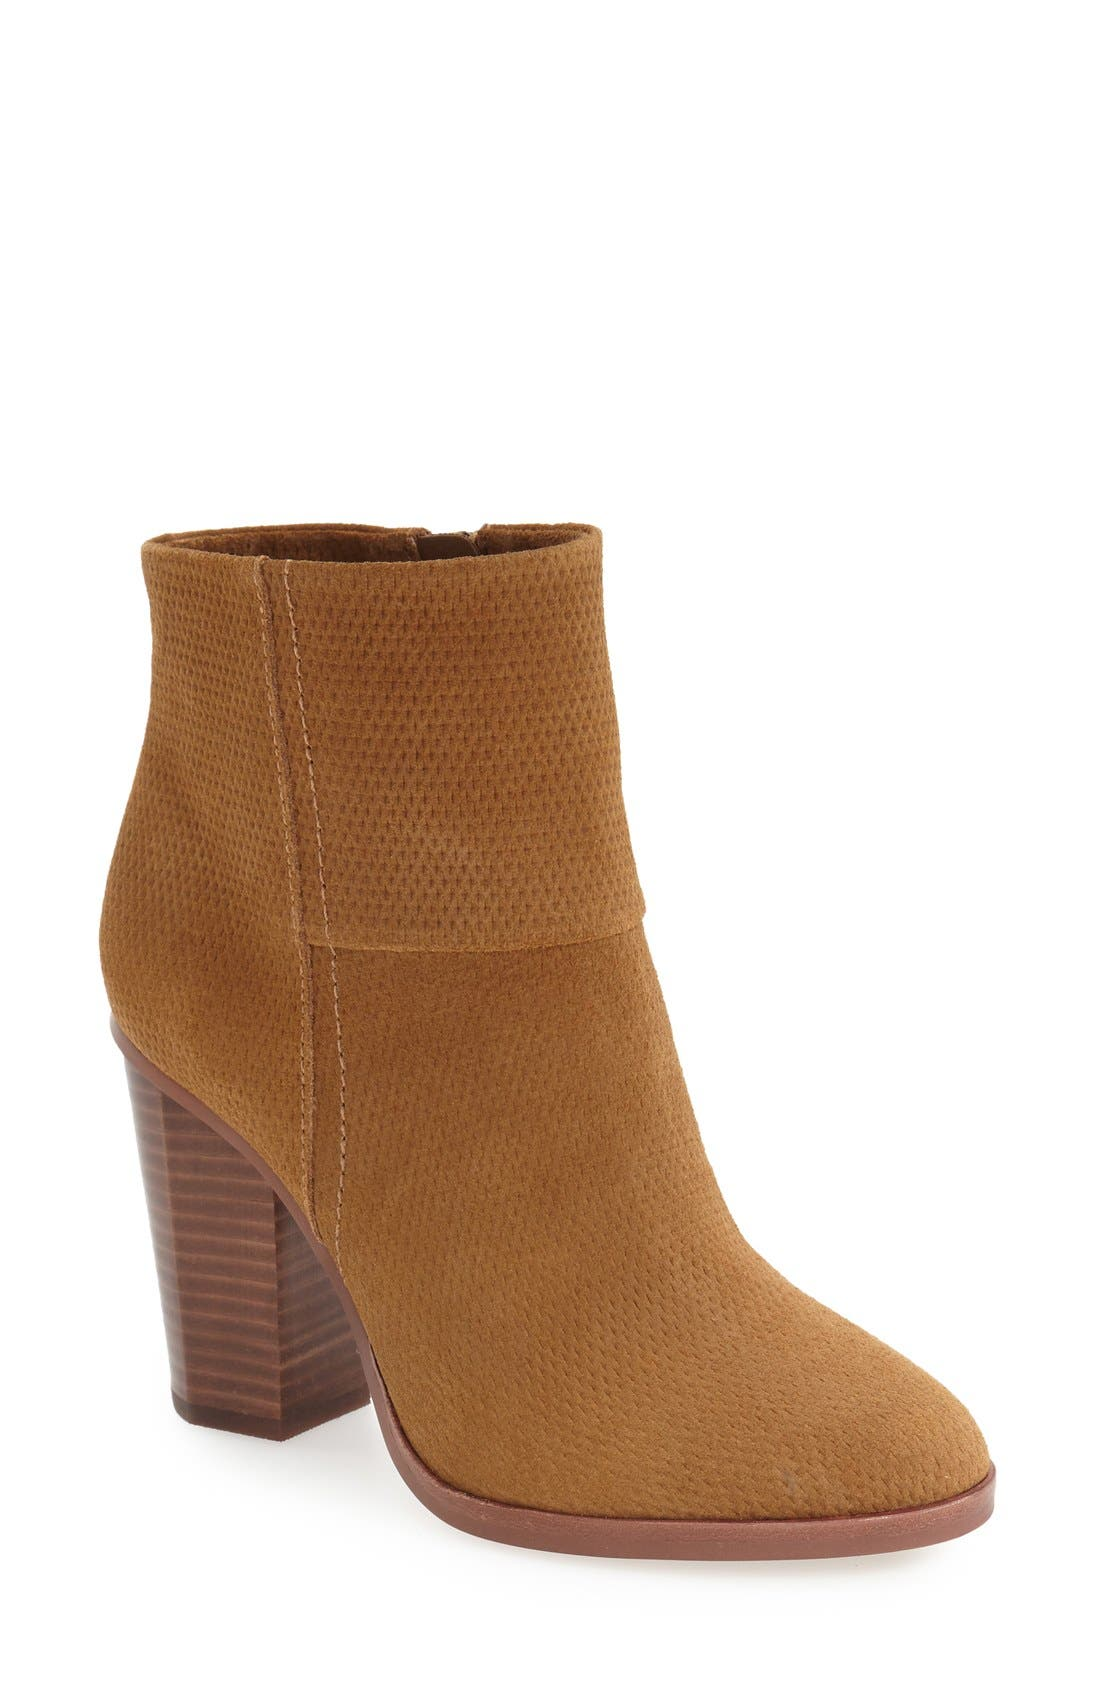 Main Image - Vince Camuto 'Larena' Almond Toe Bootie (Women)